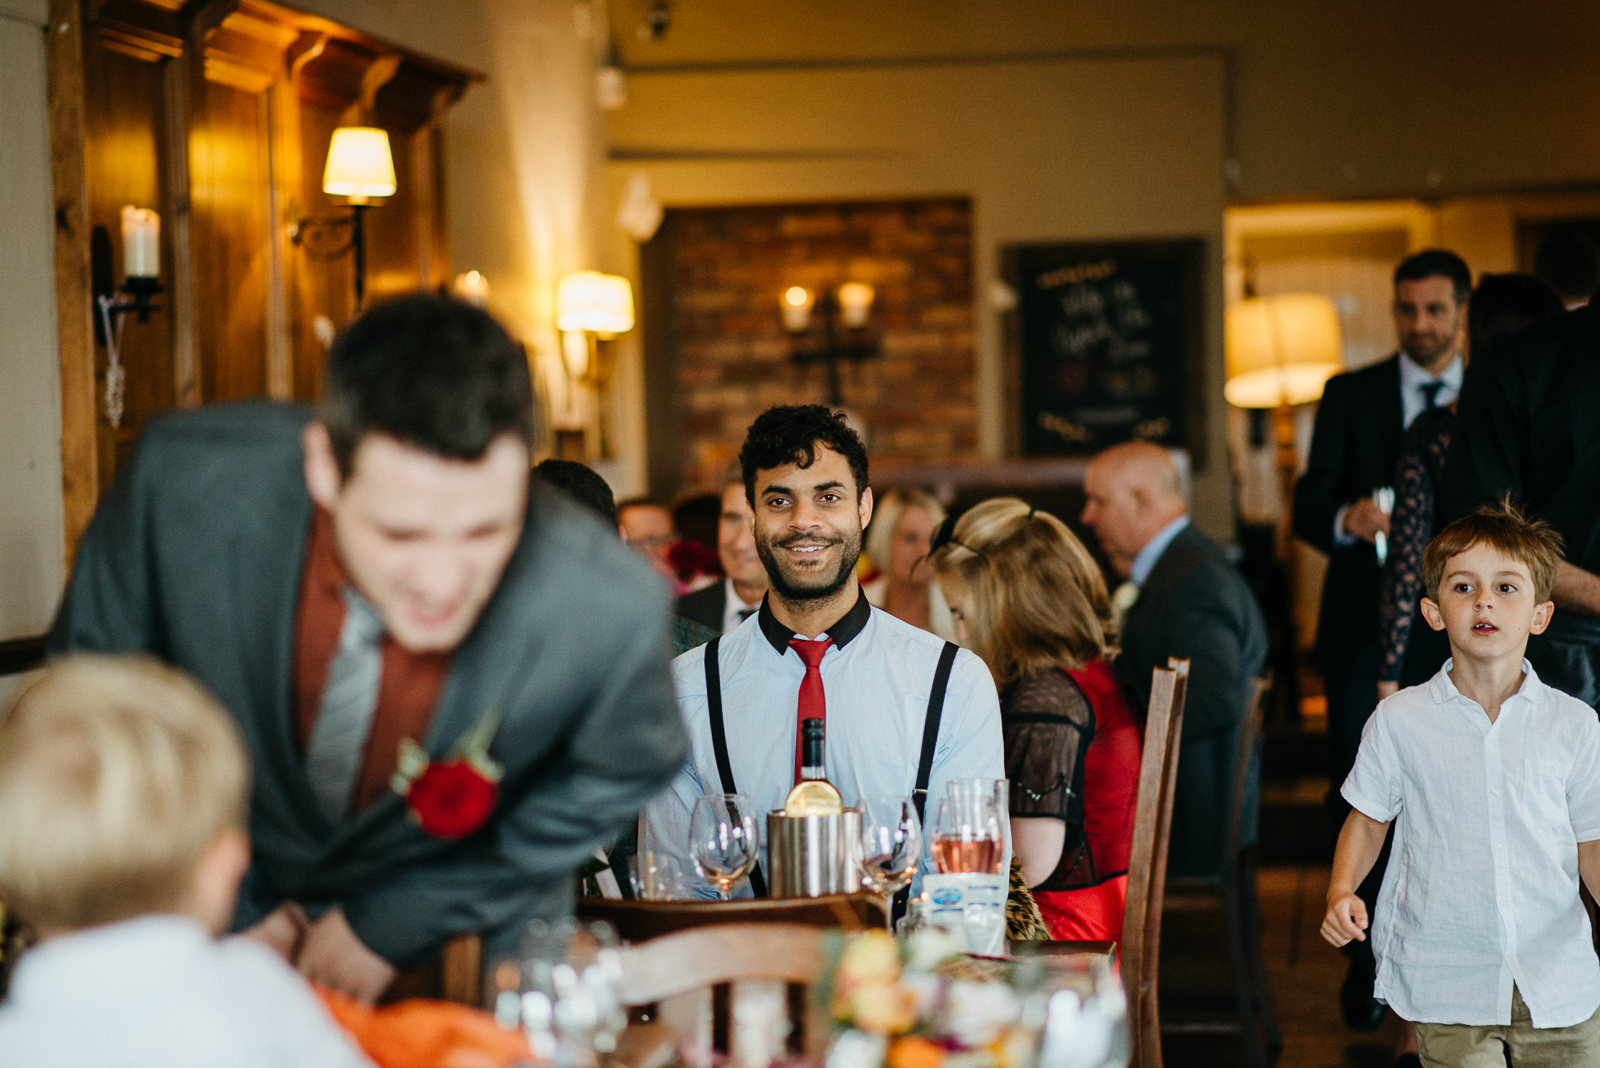 single man at wedding who wasn't given a plus one invitation to keep numbers low